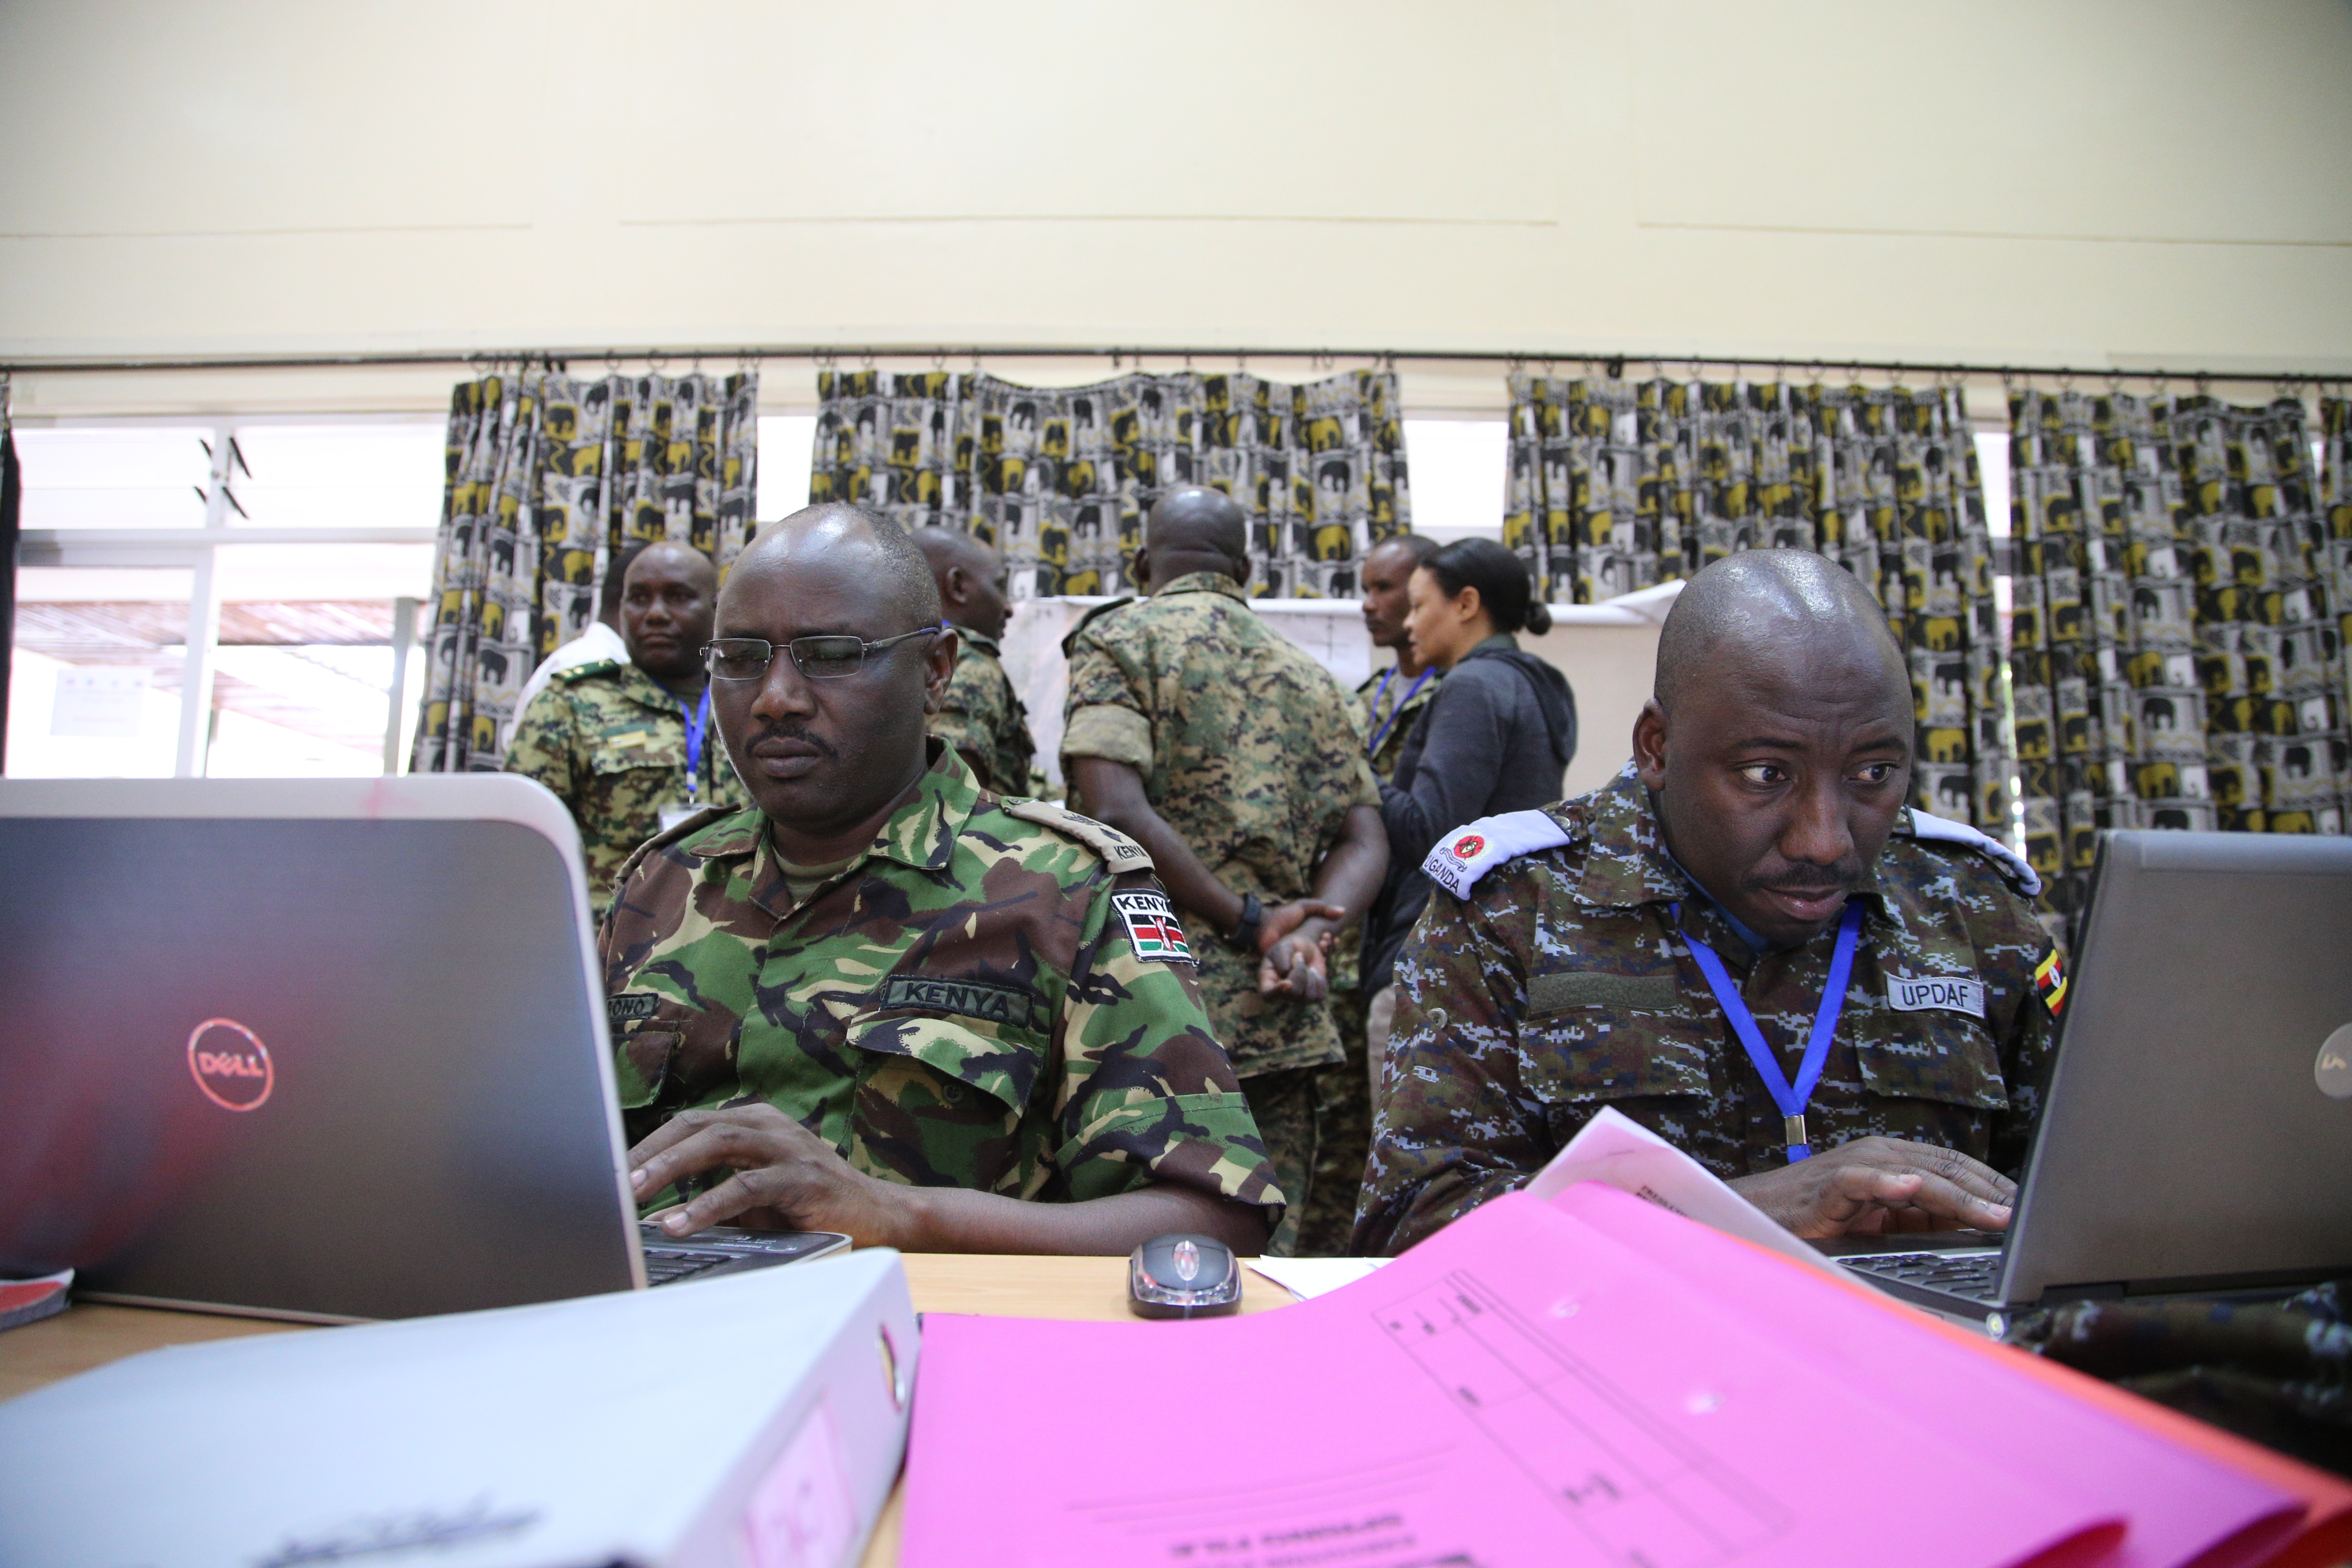 Kenya Defense Force Lt. Col. Wilson Ronoh and Uganda People's Defense Air Force Maj. Kiconco Anthony prepare themes and messages to counter simulated Al-Shabaab propaganda in the public affairs cell during the command post exercise of the Africa Contingency Operations Training and Assistance force headquarters training program held at the Humanitarian Peace Support School in Nairobi, Kenya, March 9, 2017. The five-week course was facilitated by the U.S. Department of State and is designed to improve Africa's military capabilities by providing selected training necessary for multinational peace support operations. (U.S. Army photo by Capt. Alán Ortiz)